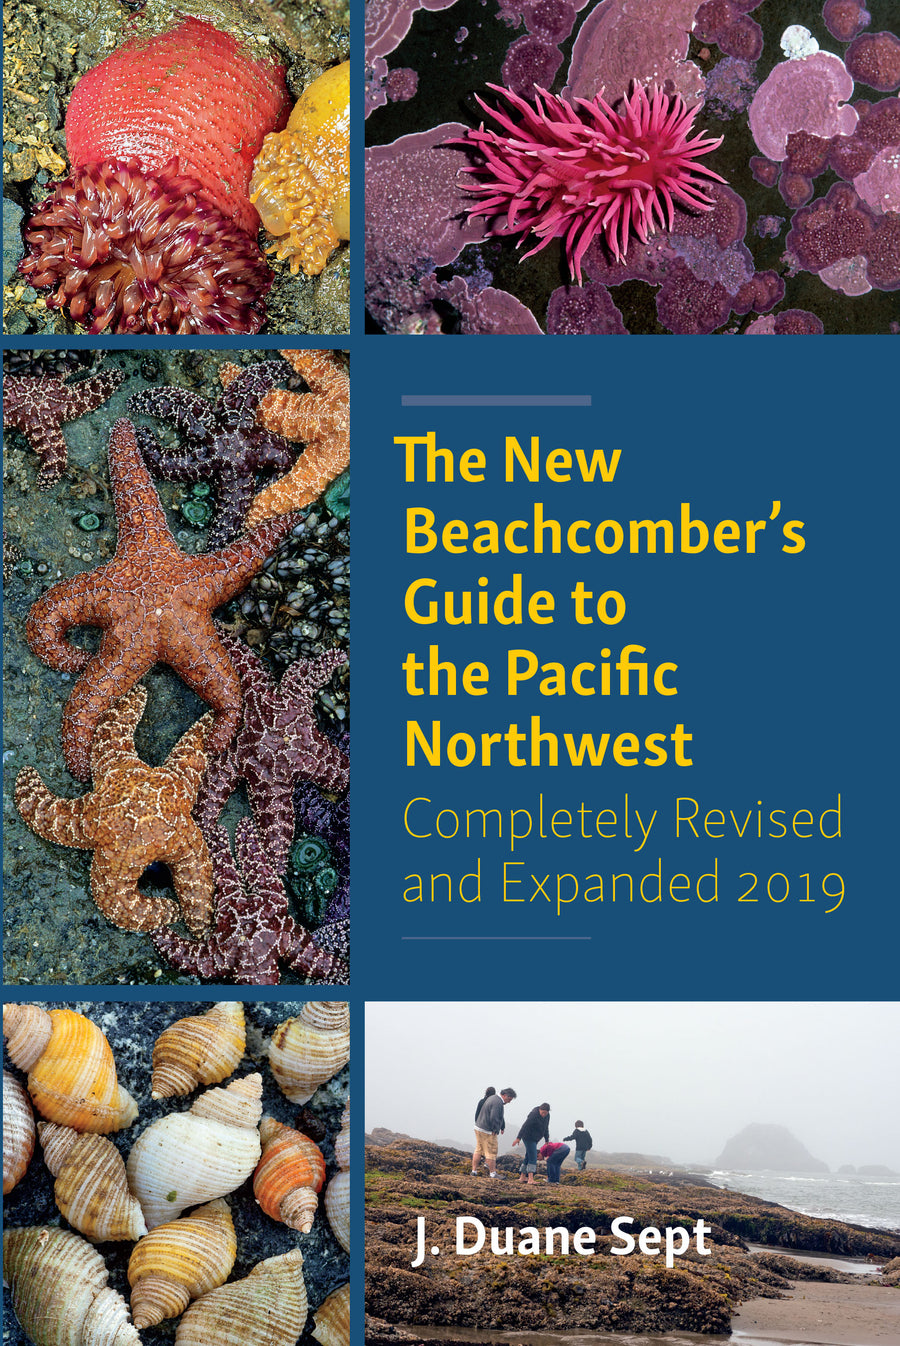 The New Beachcomber's Guide to the Pacific Northwest : Completely Revised and Expanded 2019